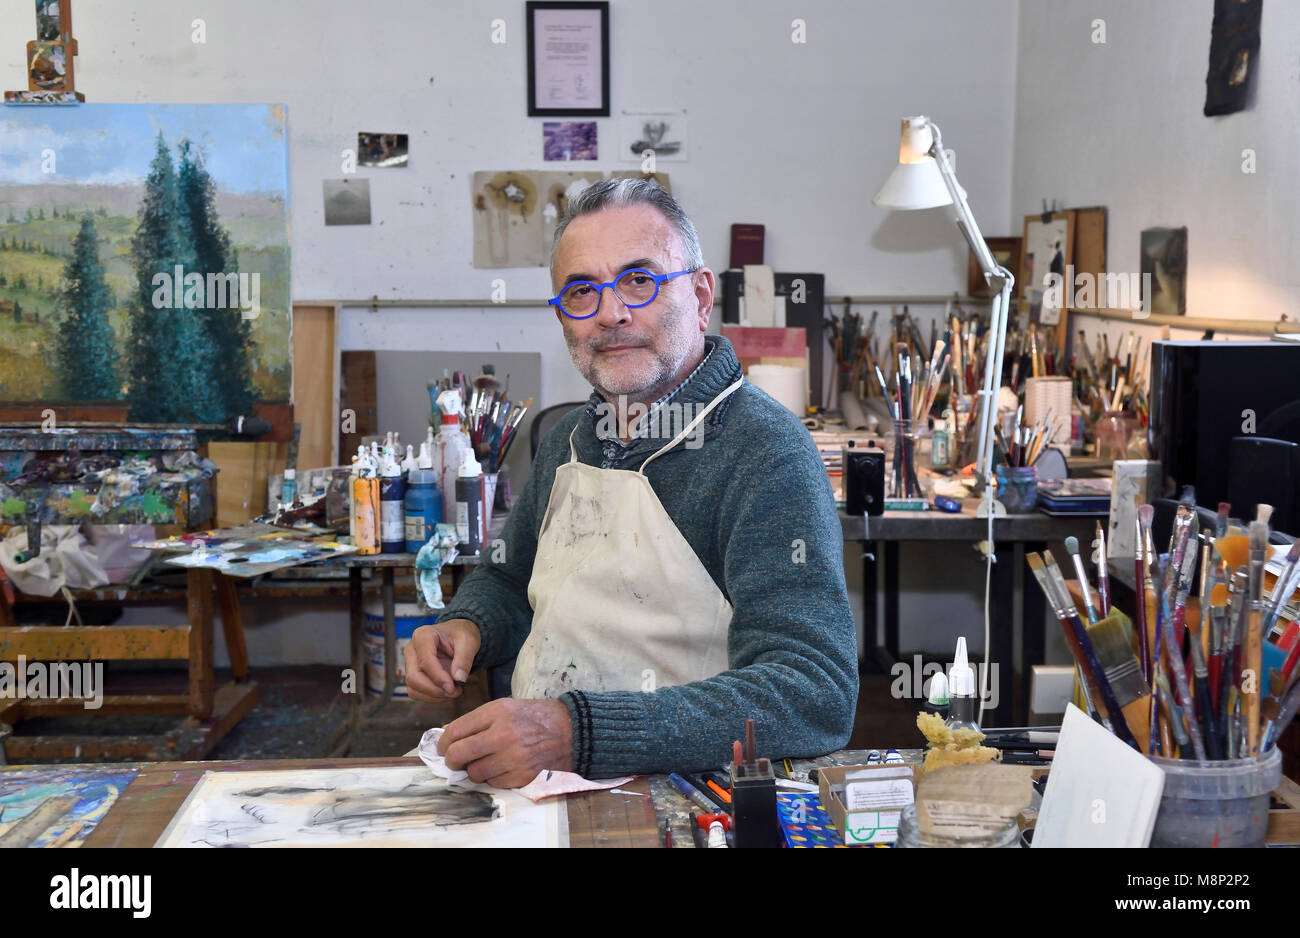 Portrait of artist in studio - Stock Image